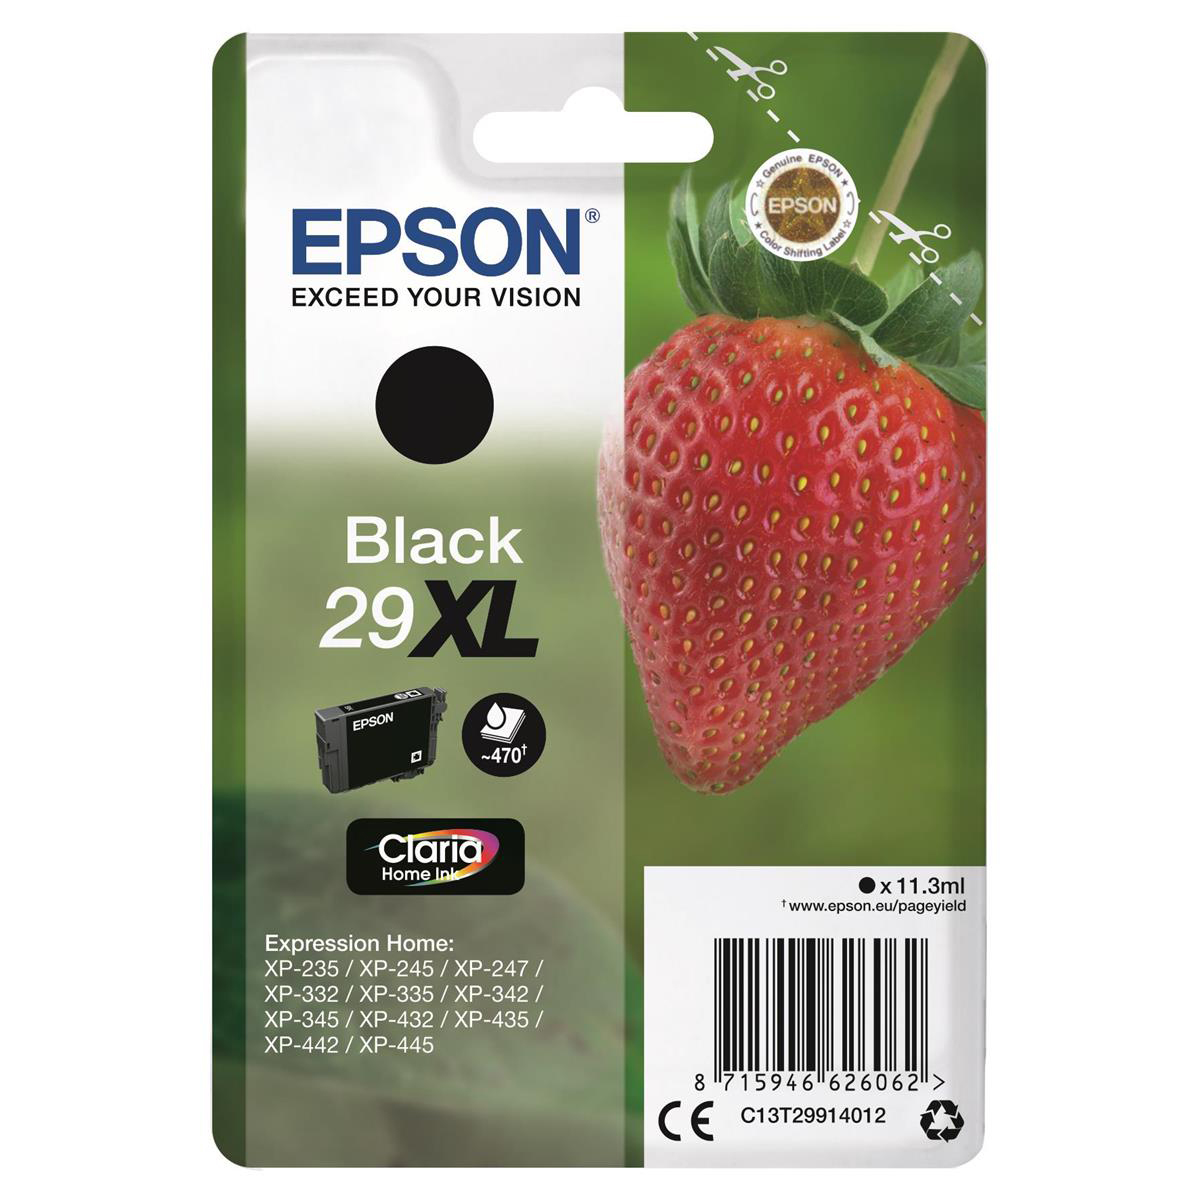 Epson 29XL InkJet Cartridge Strawberry High Yield Page Life 470pp 11.3ml Black Ref C13T29914012